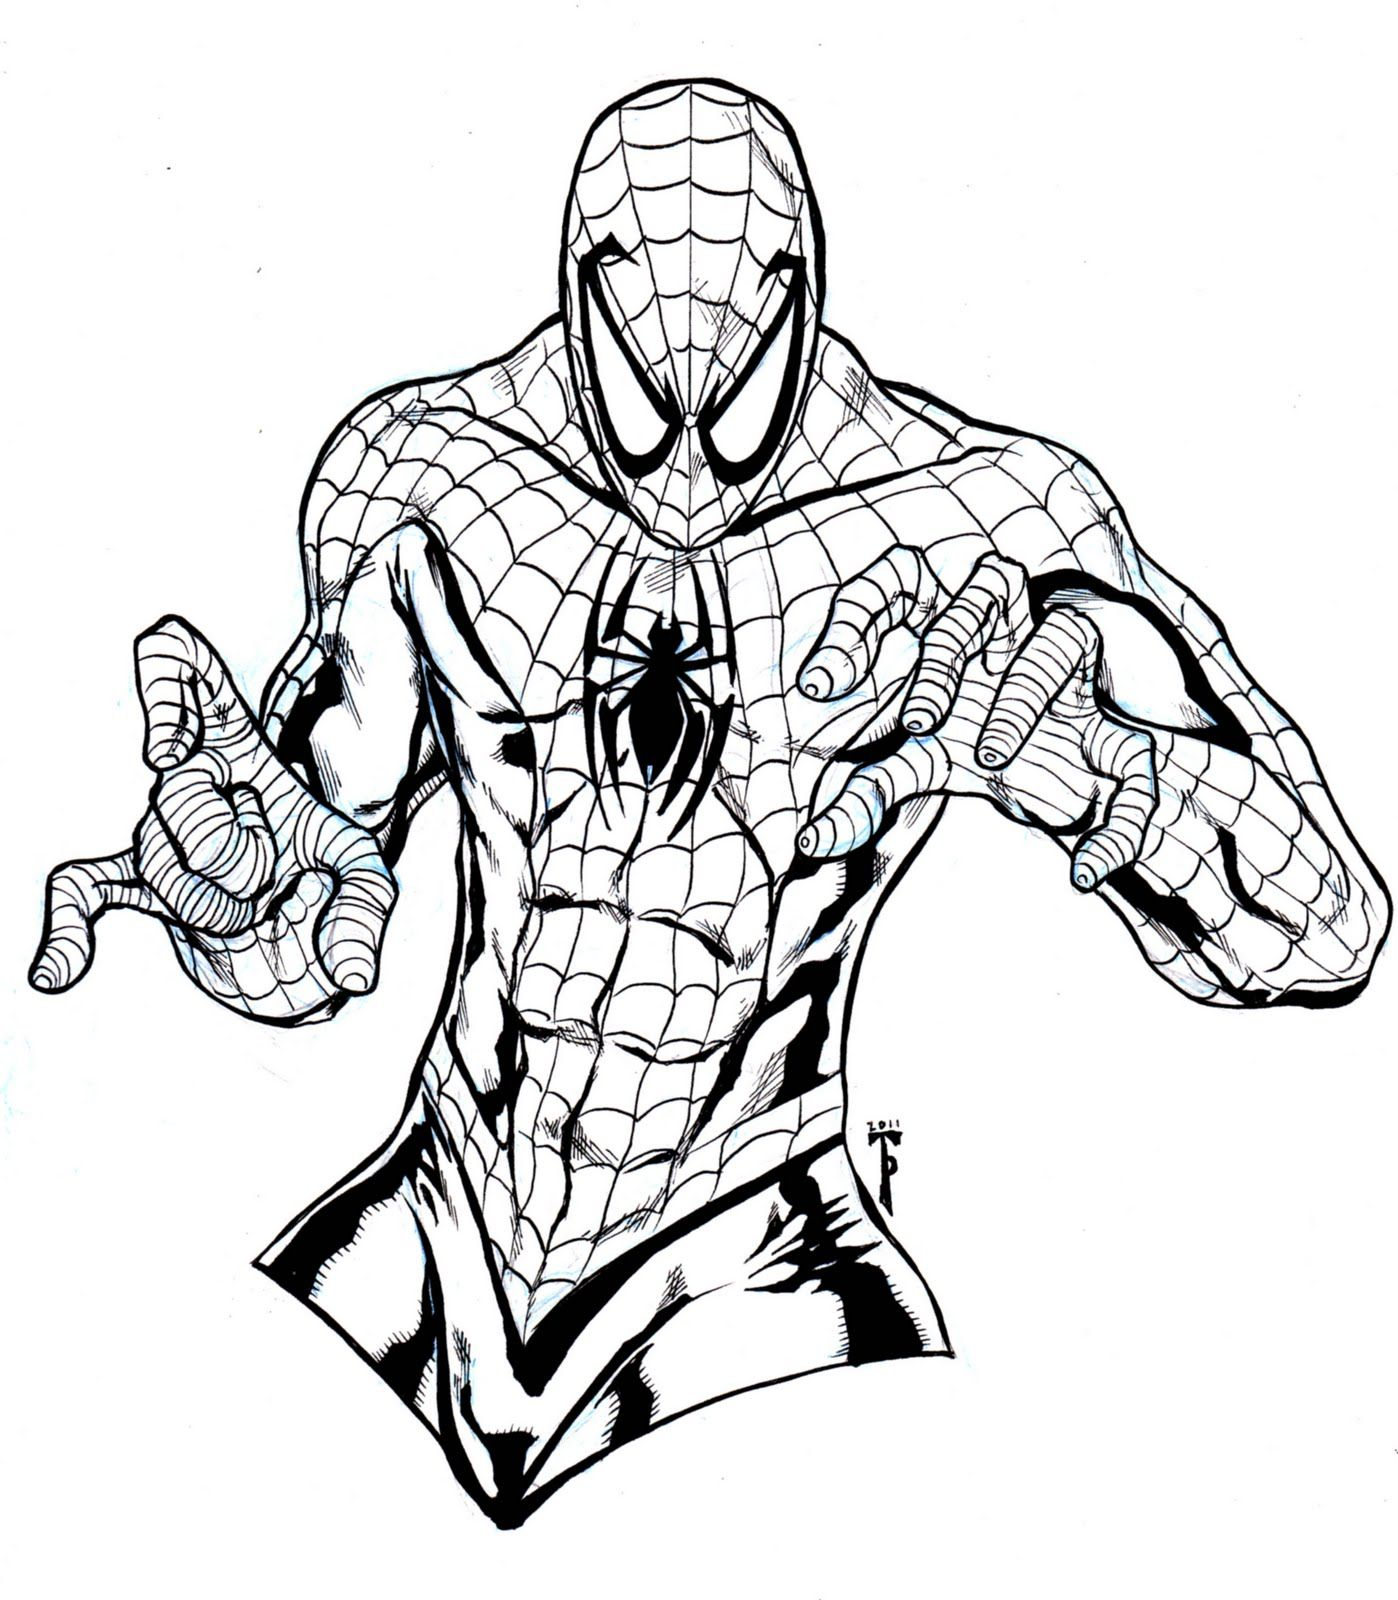 Lego Marvel Coloring Pages To Download And Print For Free: Marvel The Spectacular Spider Man Coloring Pages